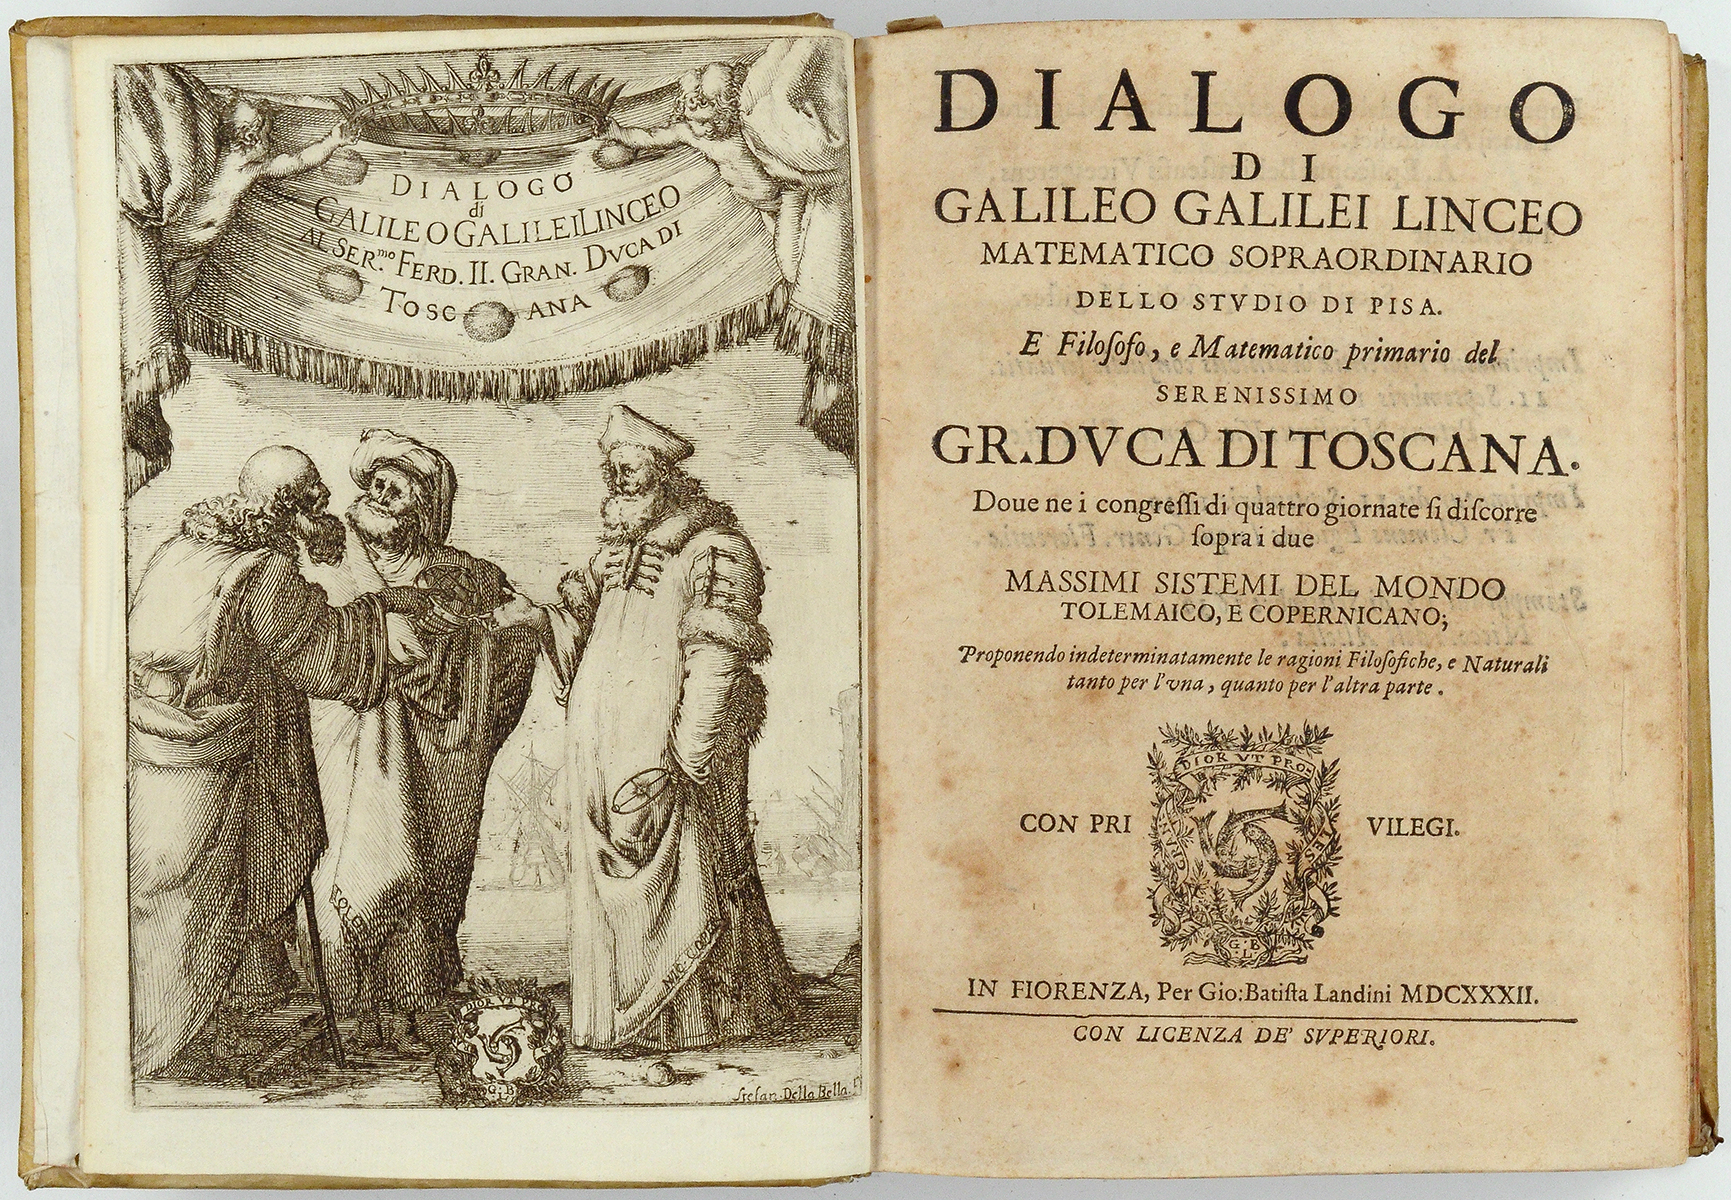 books from the ruth and lyle sellers collection on deposit at bra0851 galileo galilei dialogo di galileo galilei linceo matematico sopraordinario dello studio di pisa florence g b landini 1632